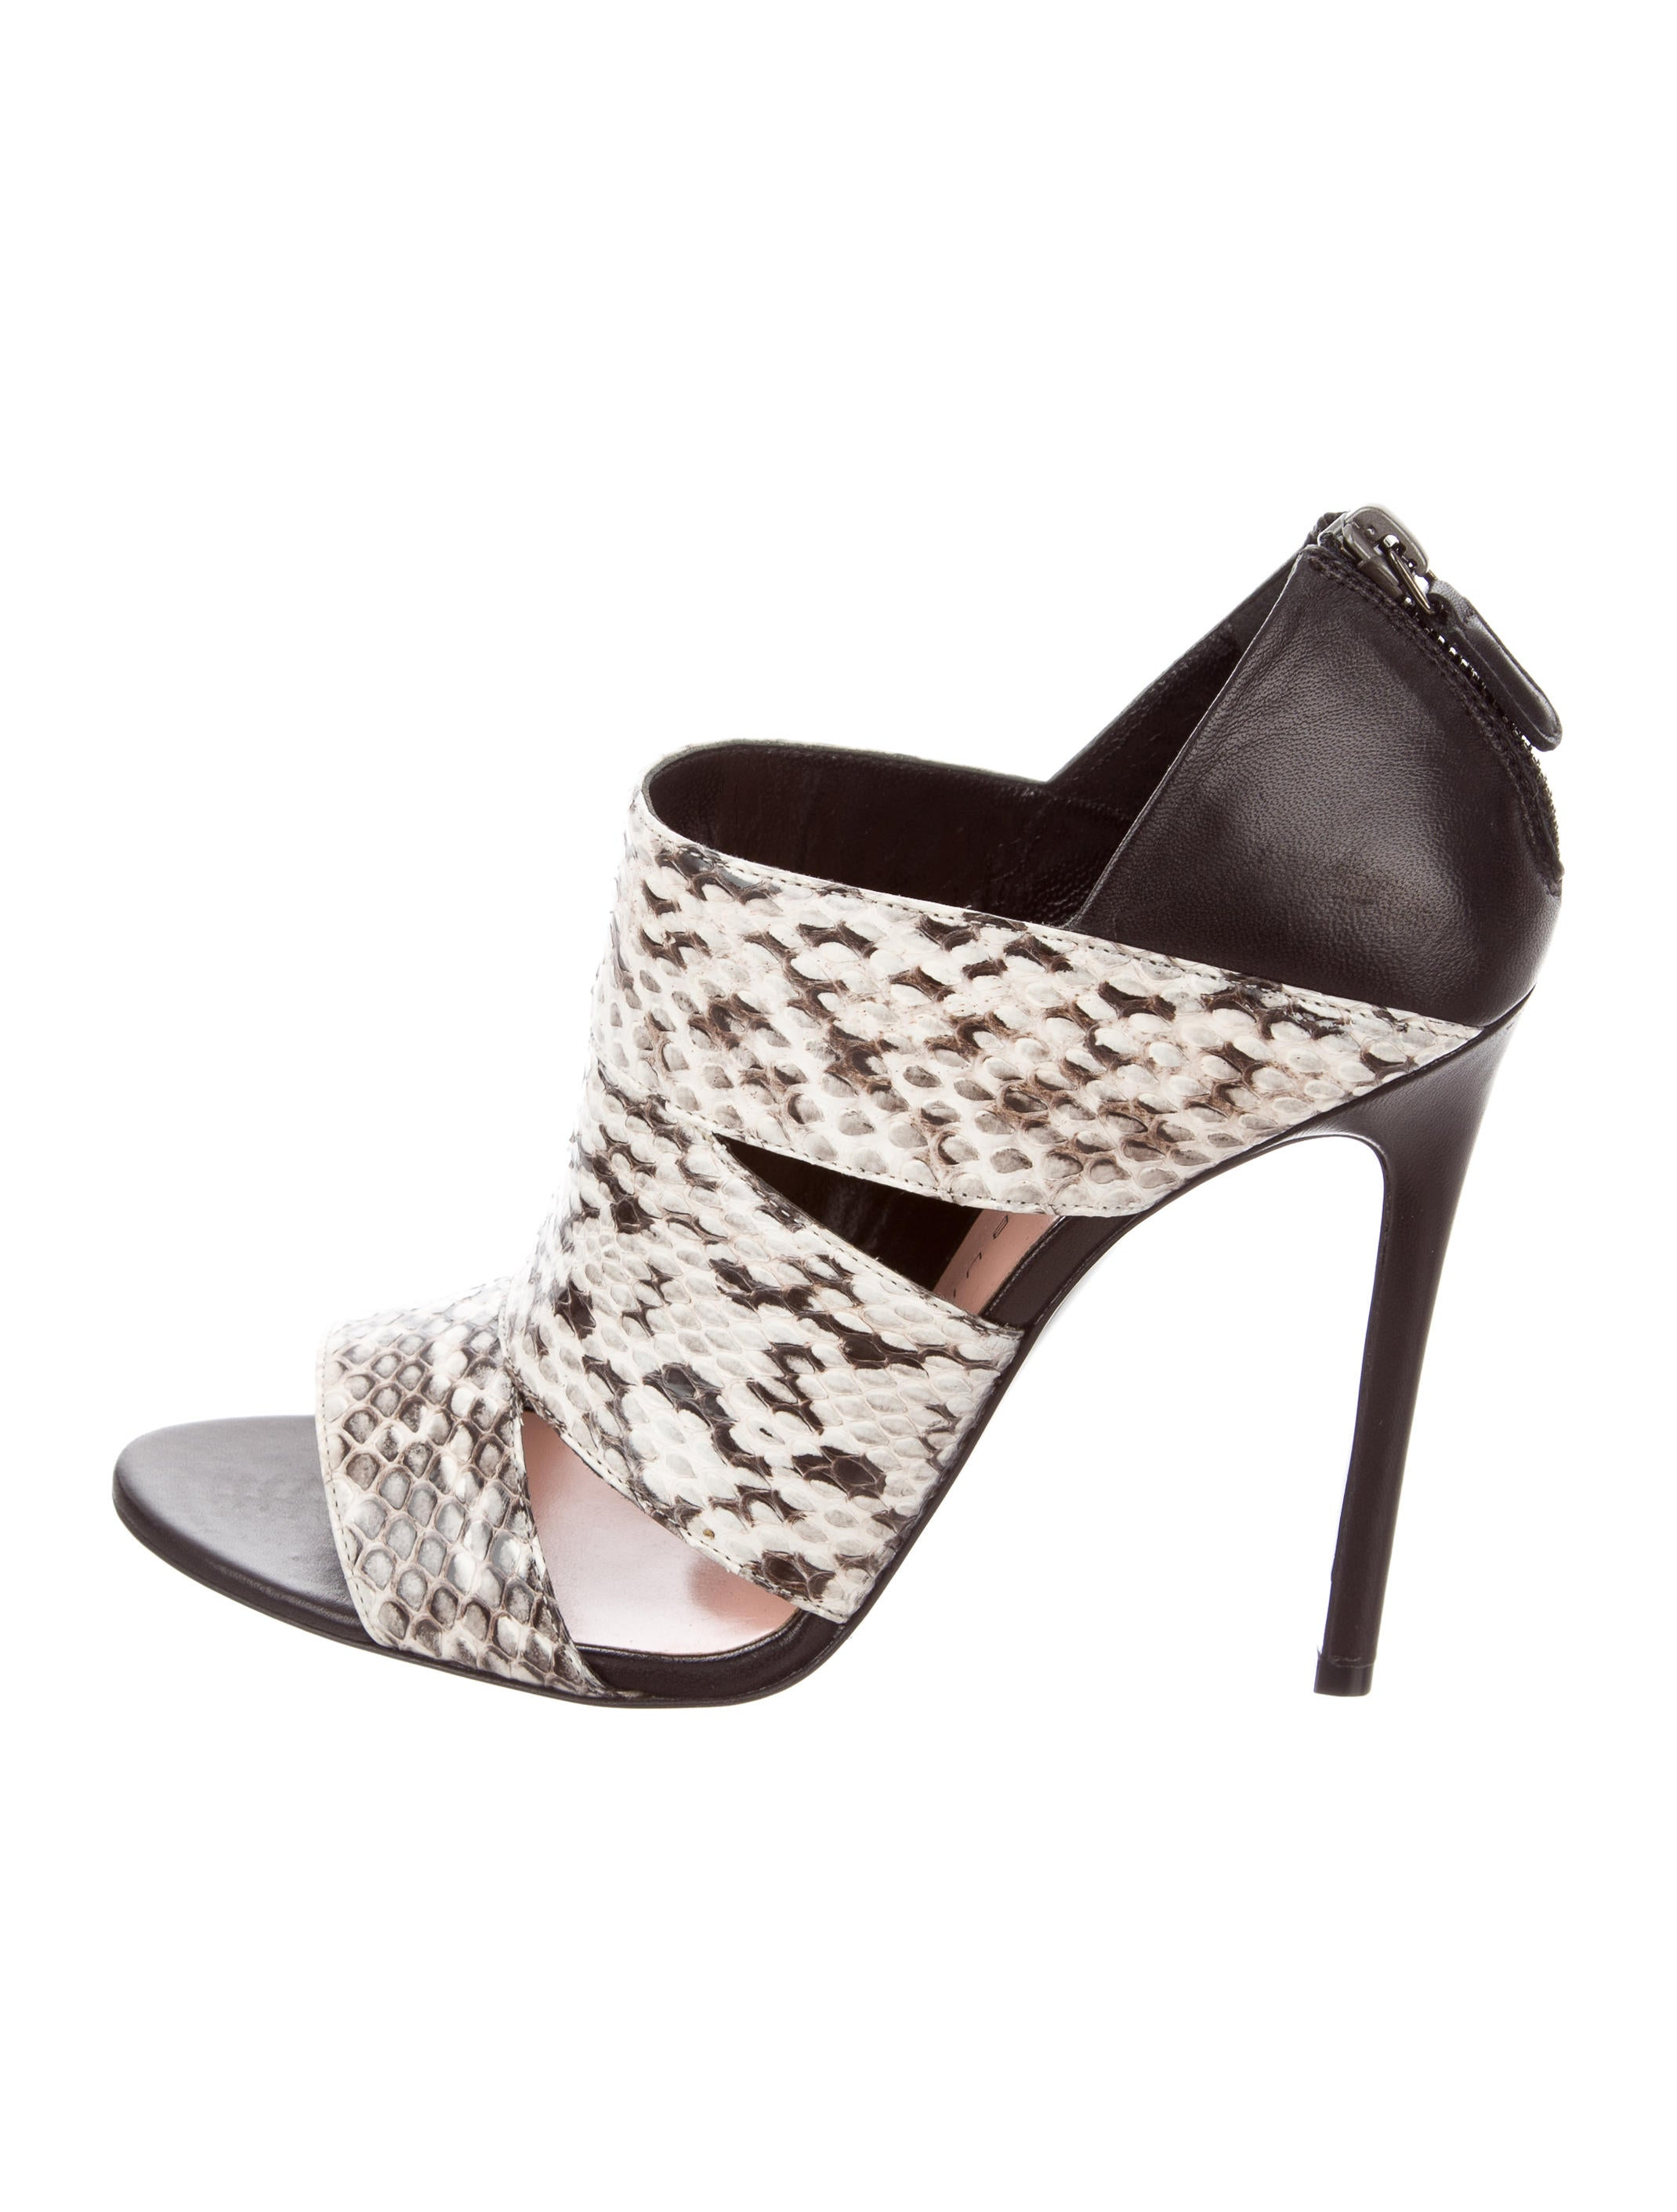 Barbara Bui Swoop Embossed Pumps w/ Tags outlet low price outlet 100% original yam2Z